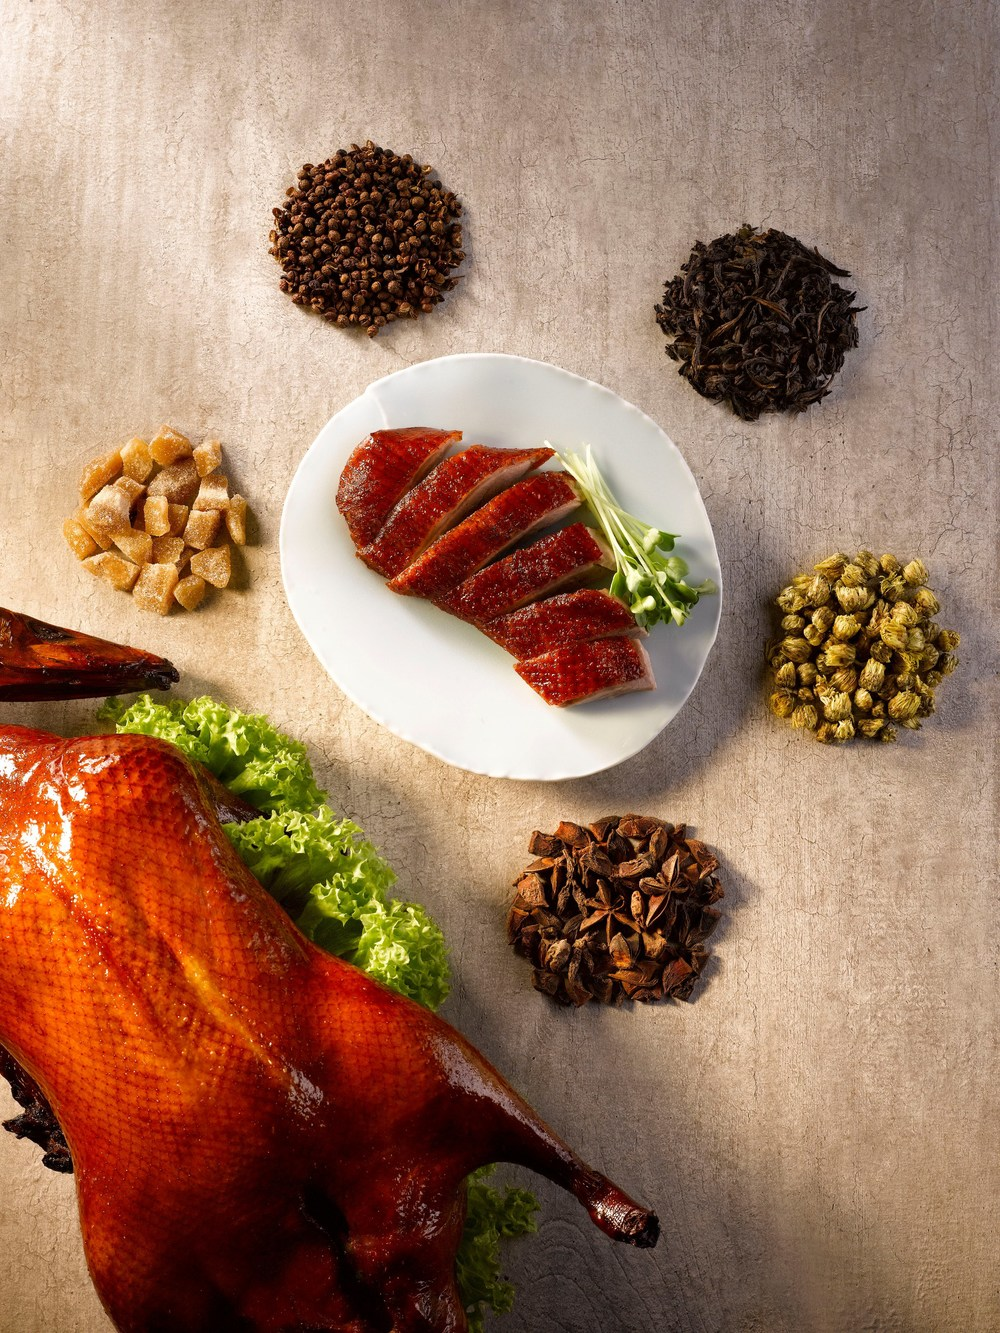 Signature Tea-smoked Duck from Man Fu Yuan | Photo Credit: InterContinental Singapore